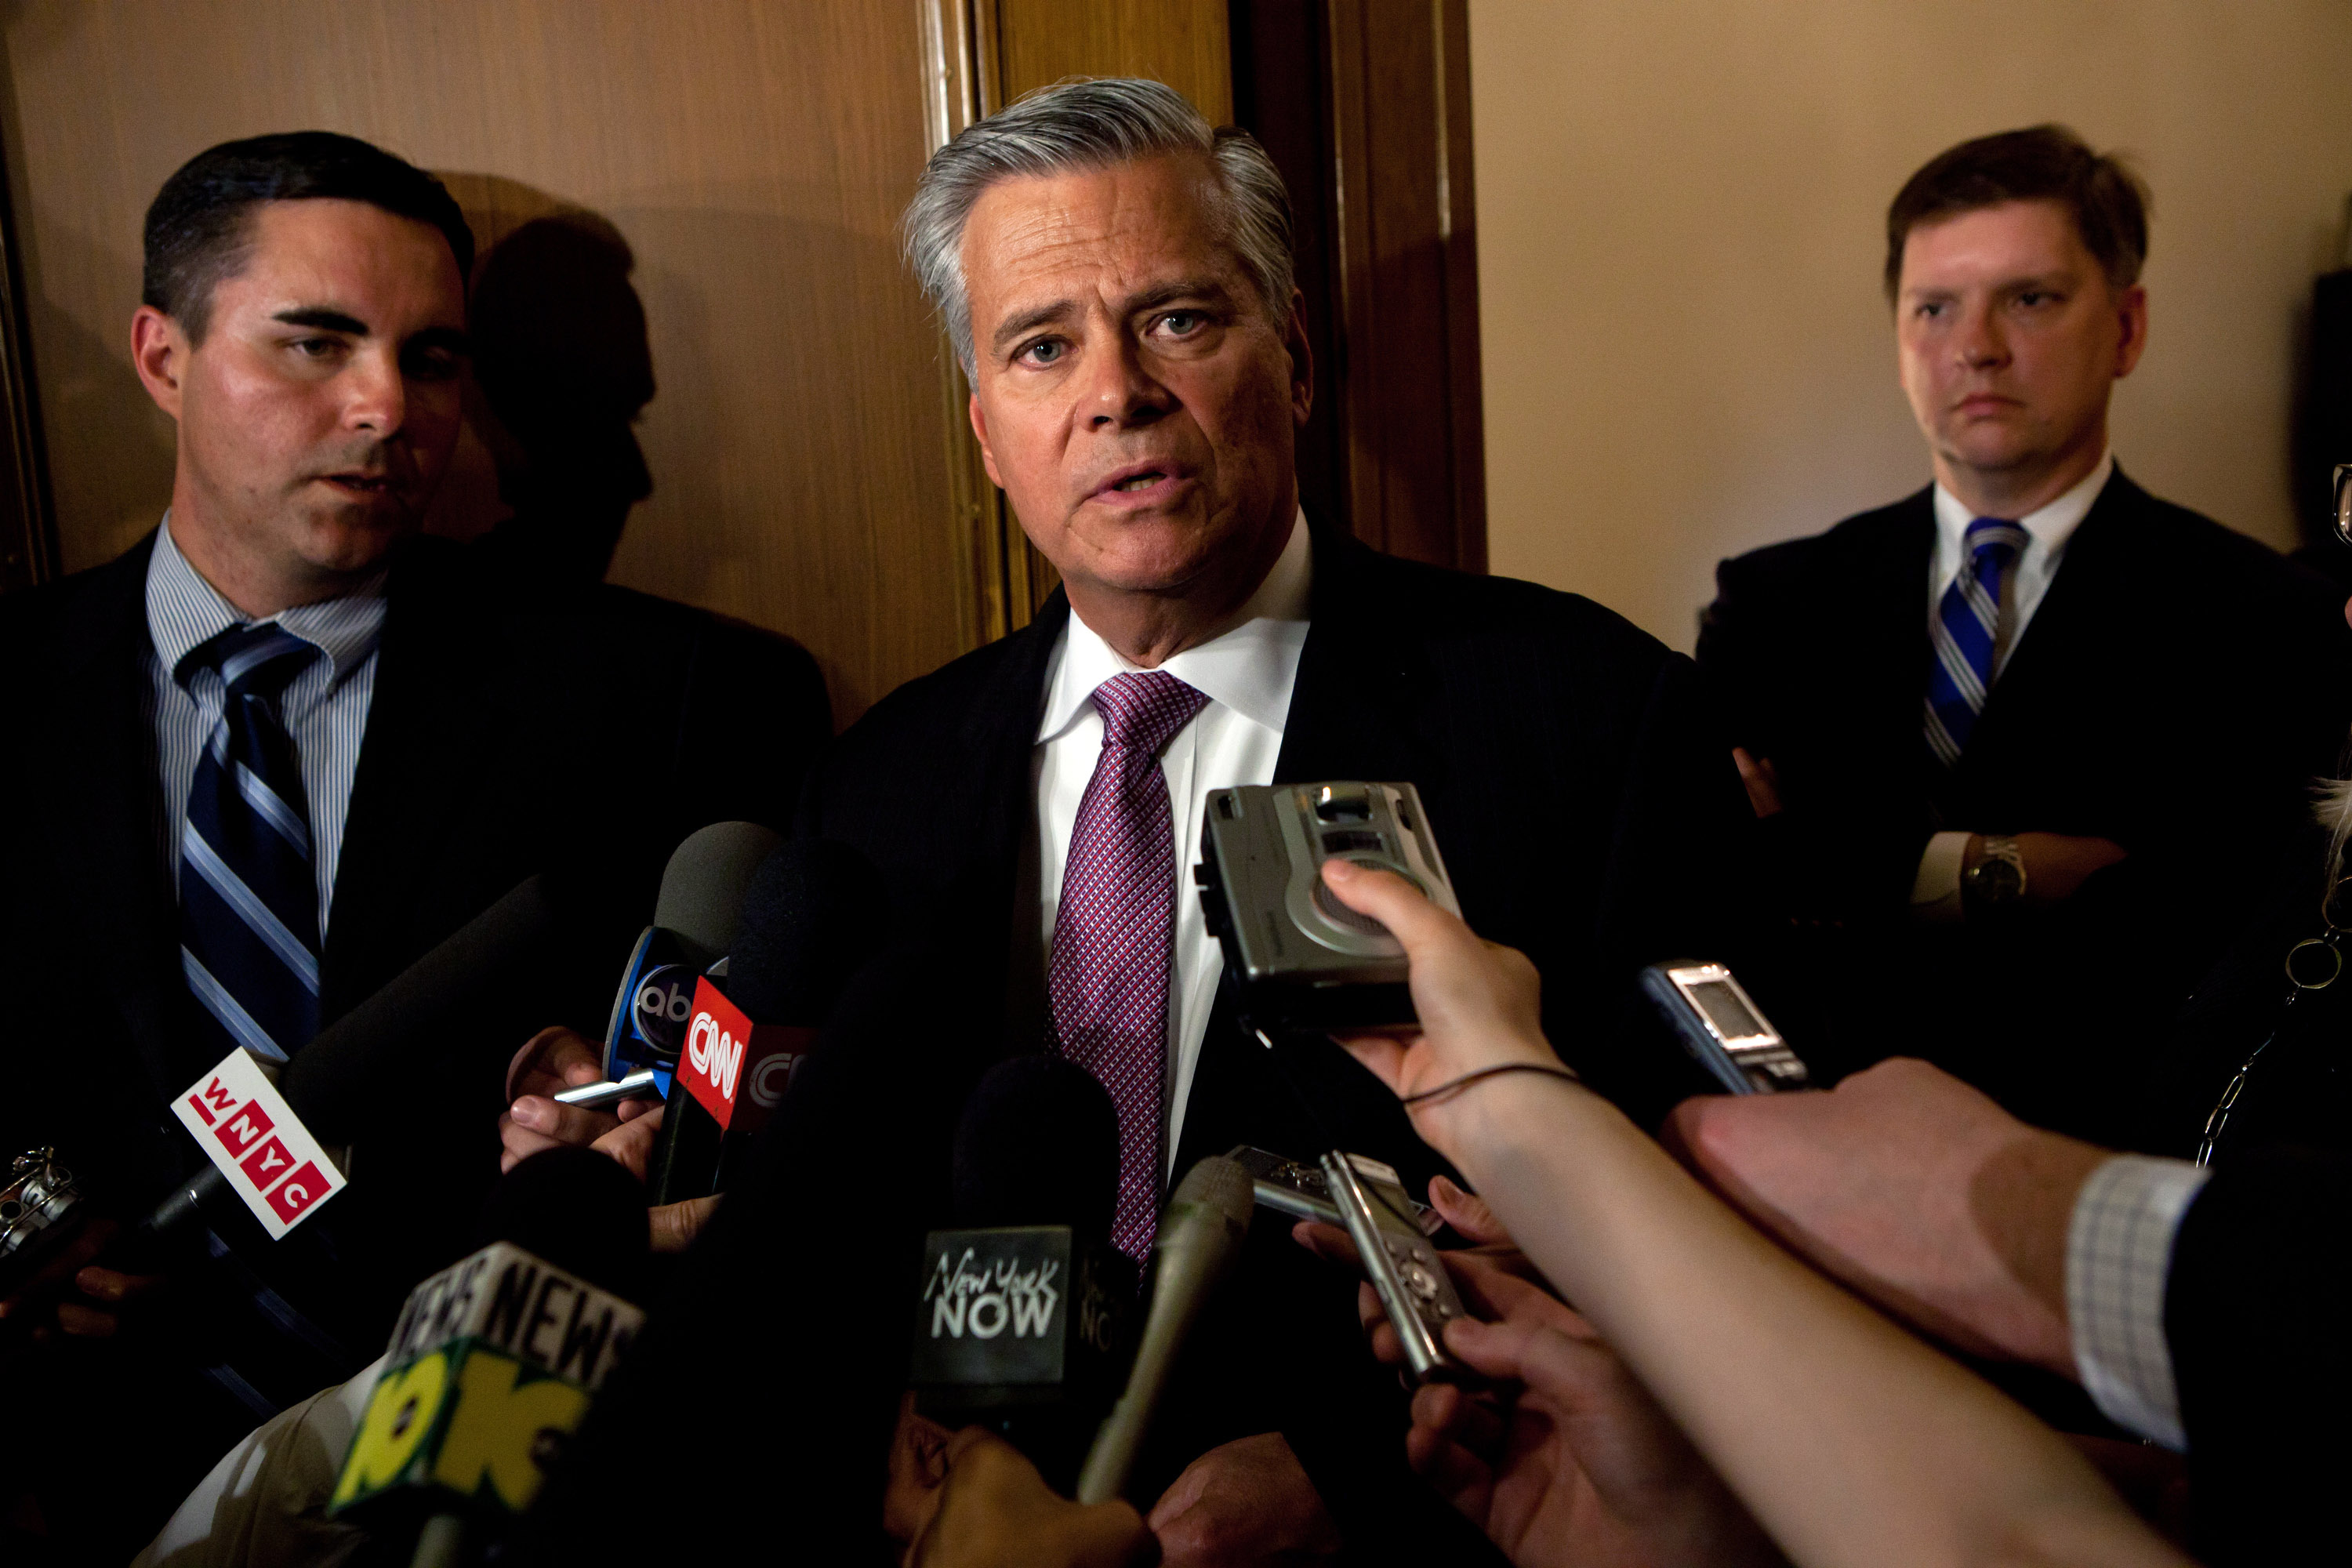 State Senator Dean Skelos, the former Republican majority leader